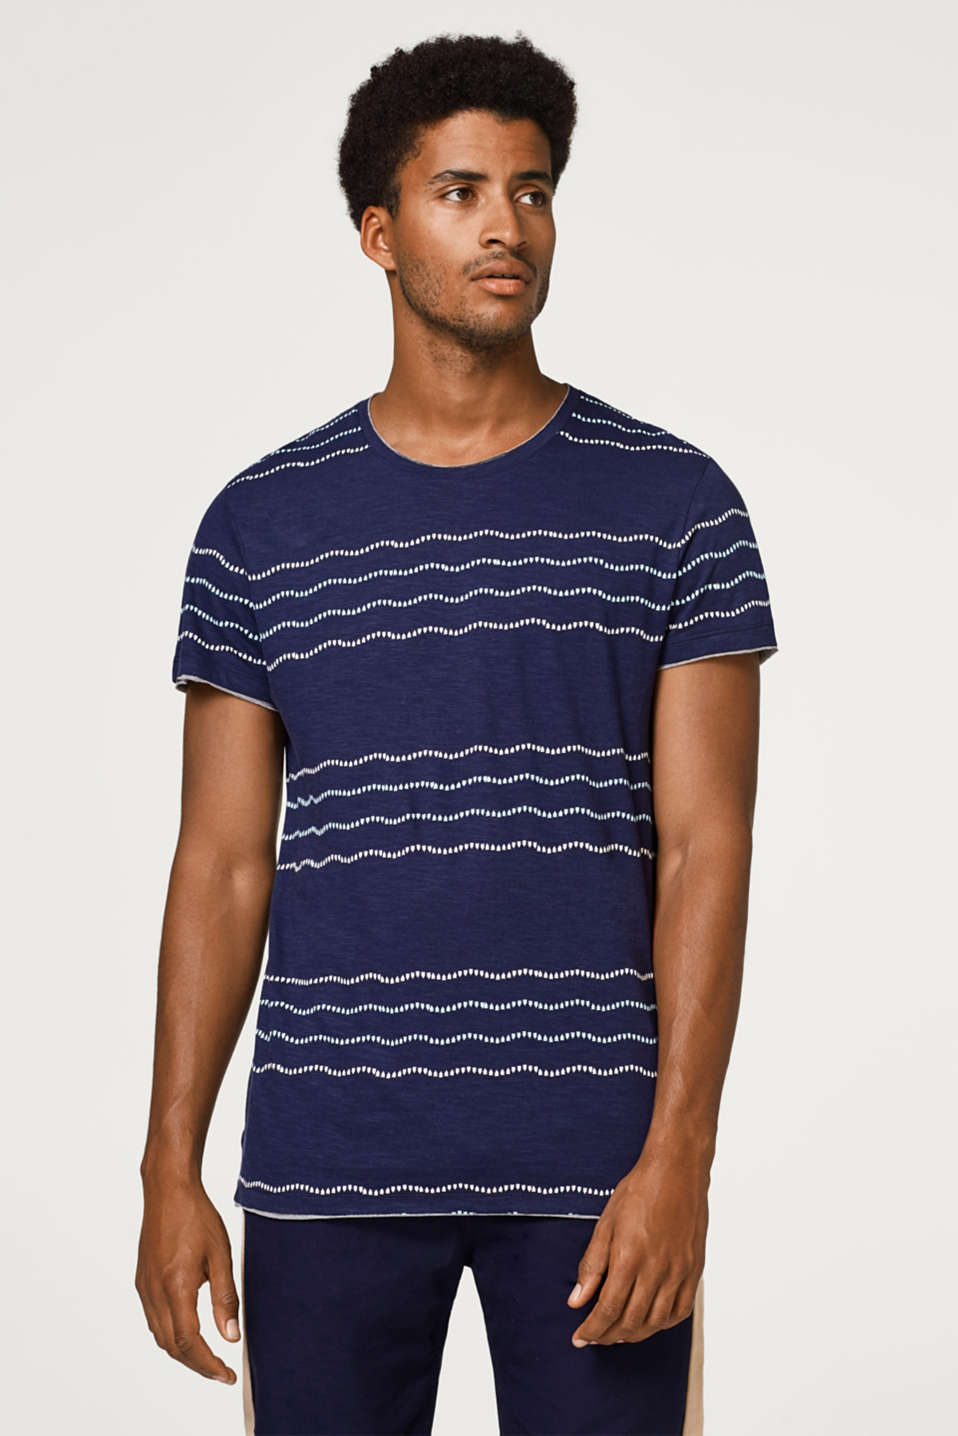 edc - Layer-look jersey T-shirt, with print stripes